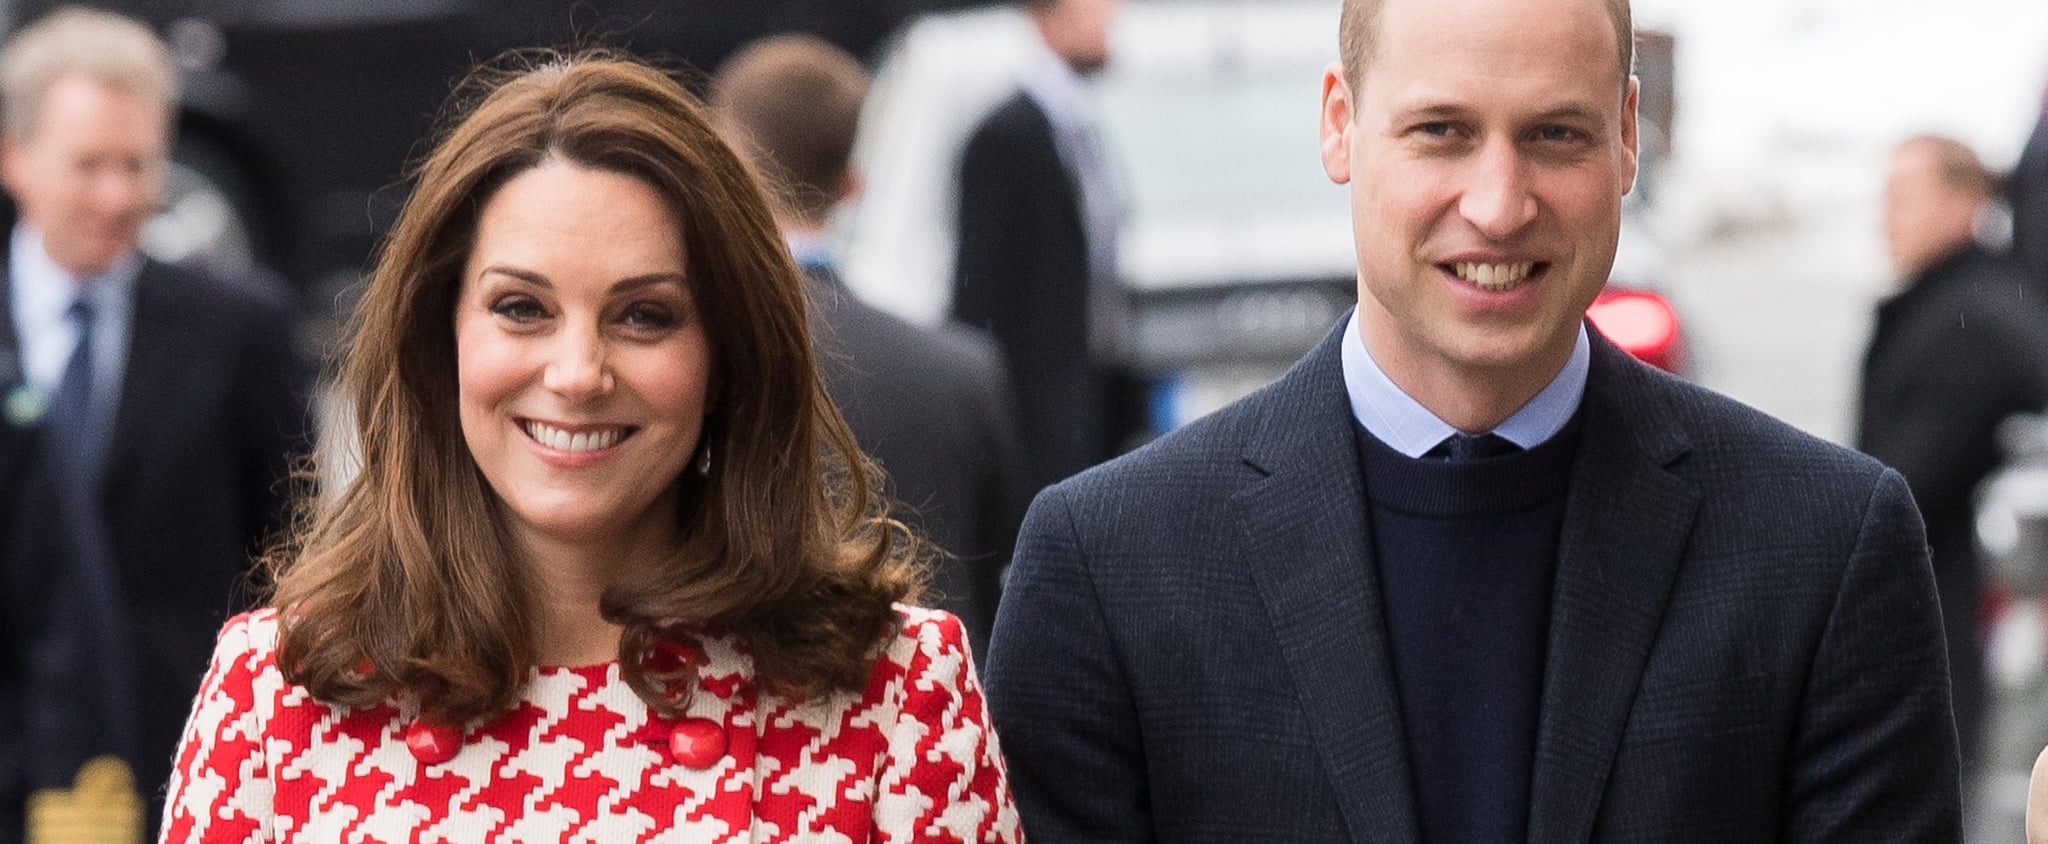 Kate Middleton Gives Birth to Third Child